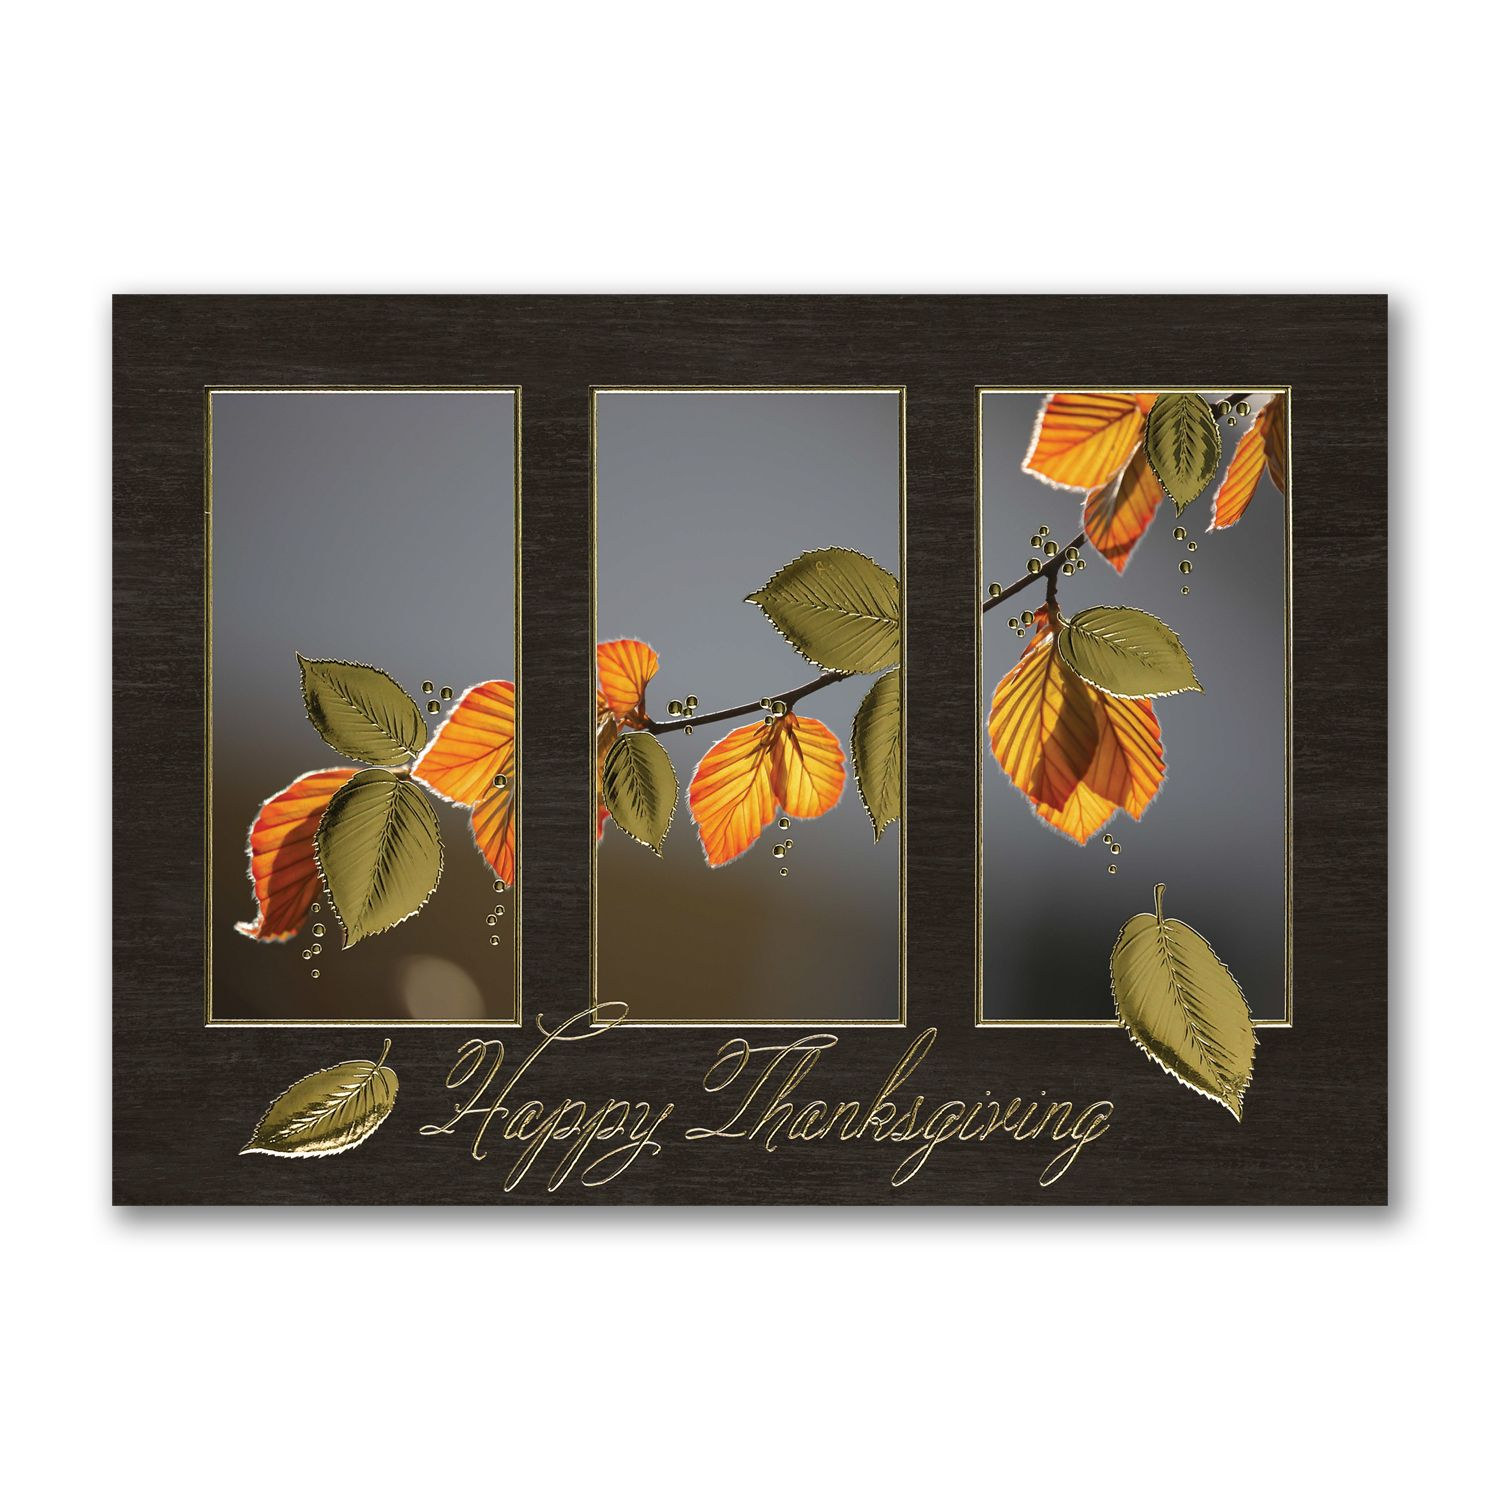 Stylized Fall Leaves Happy Thanksgiving Leaves Send A Cherished Thanksgiving Message G Foil Happy Thanksgiving Leaves Send A Cherished Thanksgiving Message With